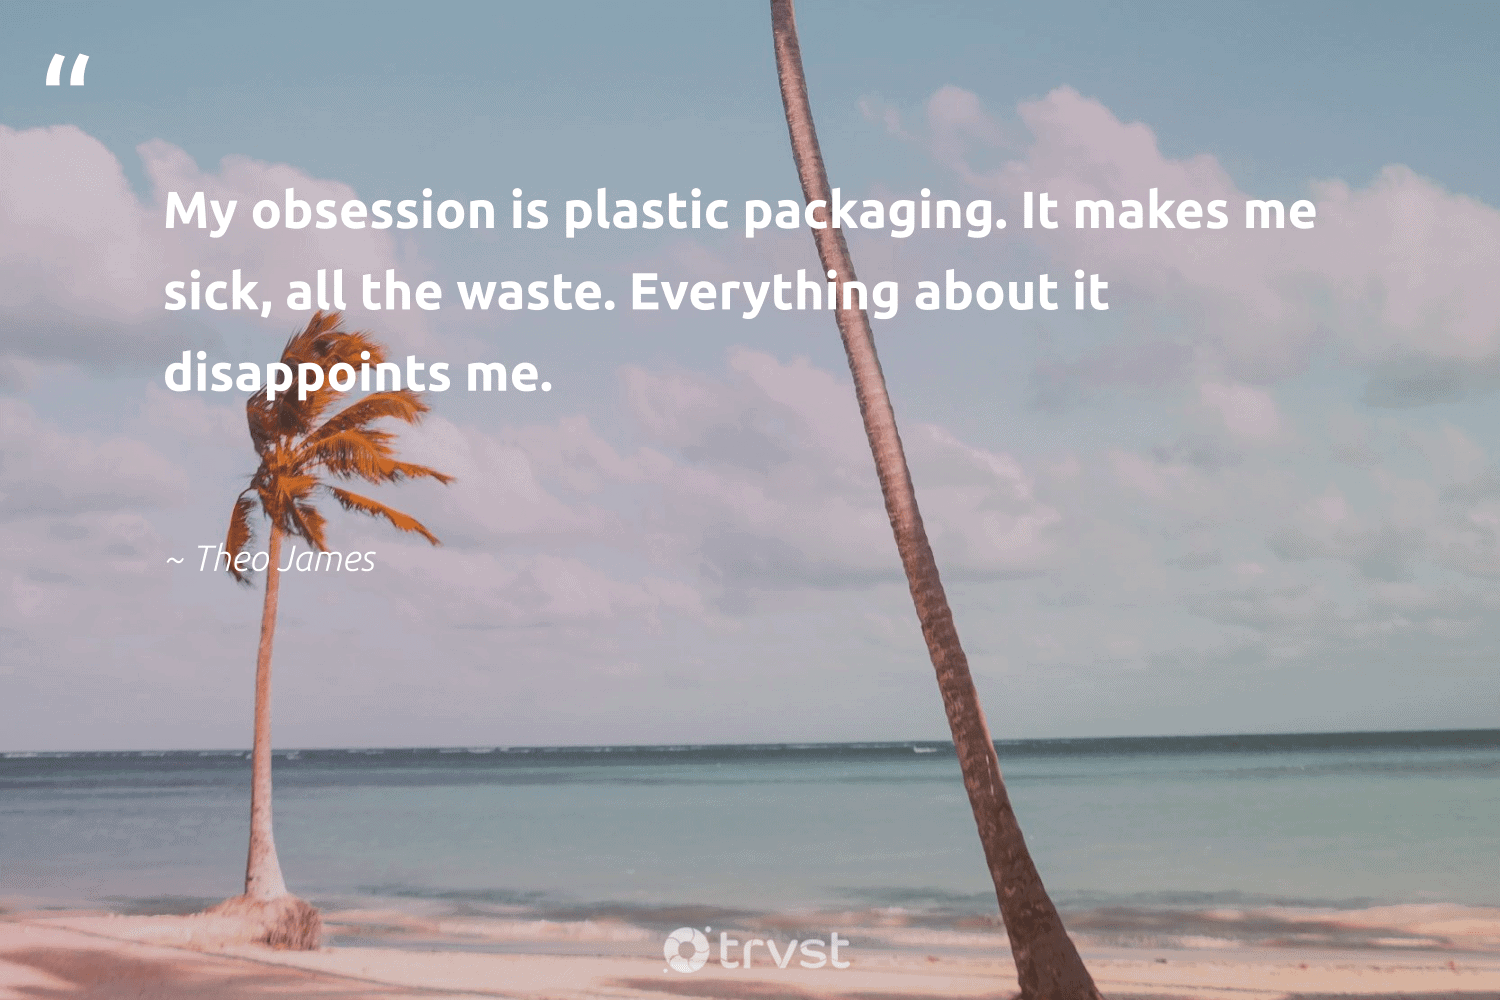 """""""My obsession is plastic packaging. It makes me sick, all the waste. Everything about it disappoints me.""""  - Theo James #trvst #quotes #plasticwaste #waste #plastic #saynotooneuseplastic #gogreen #sustainableliving #dosomething #scrapplastic #betterfortheplanet #wastefree"""